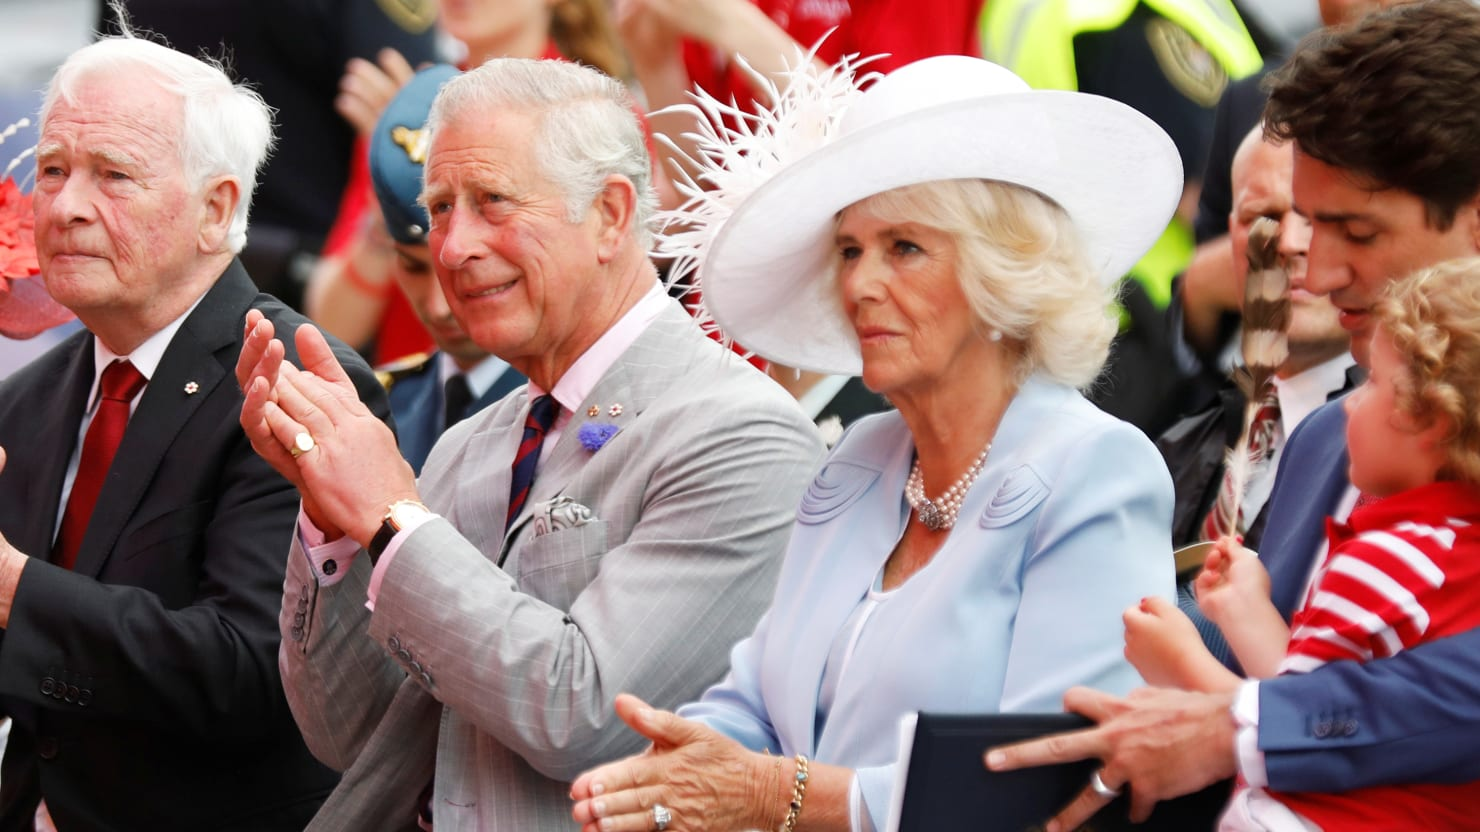 As His Popularity Wanes Away, Could Prince Charles Be the Last King?